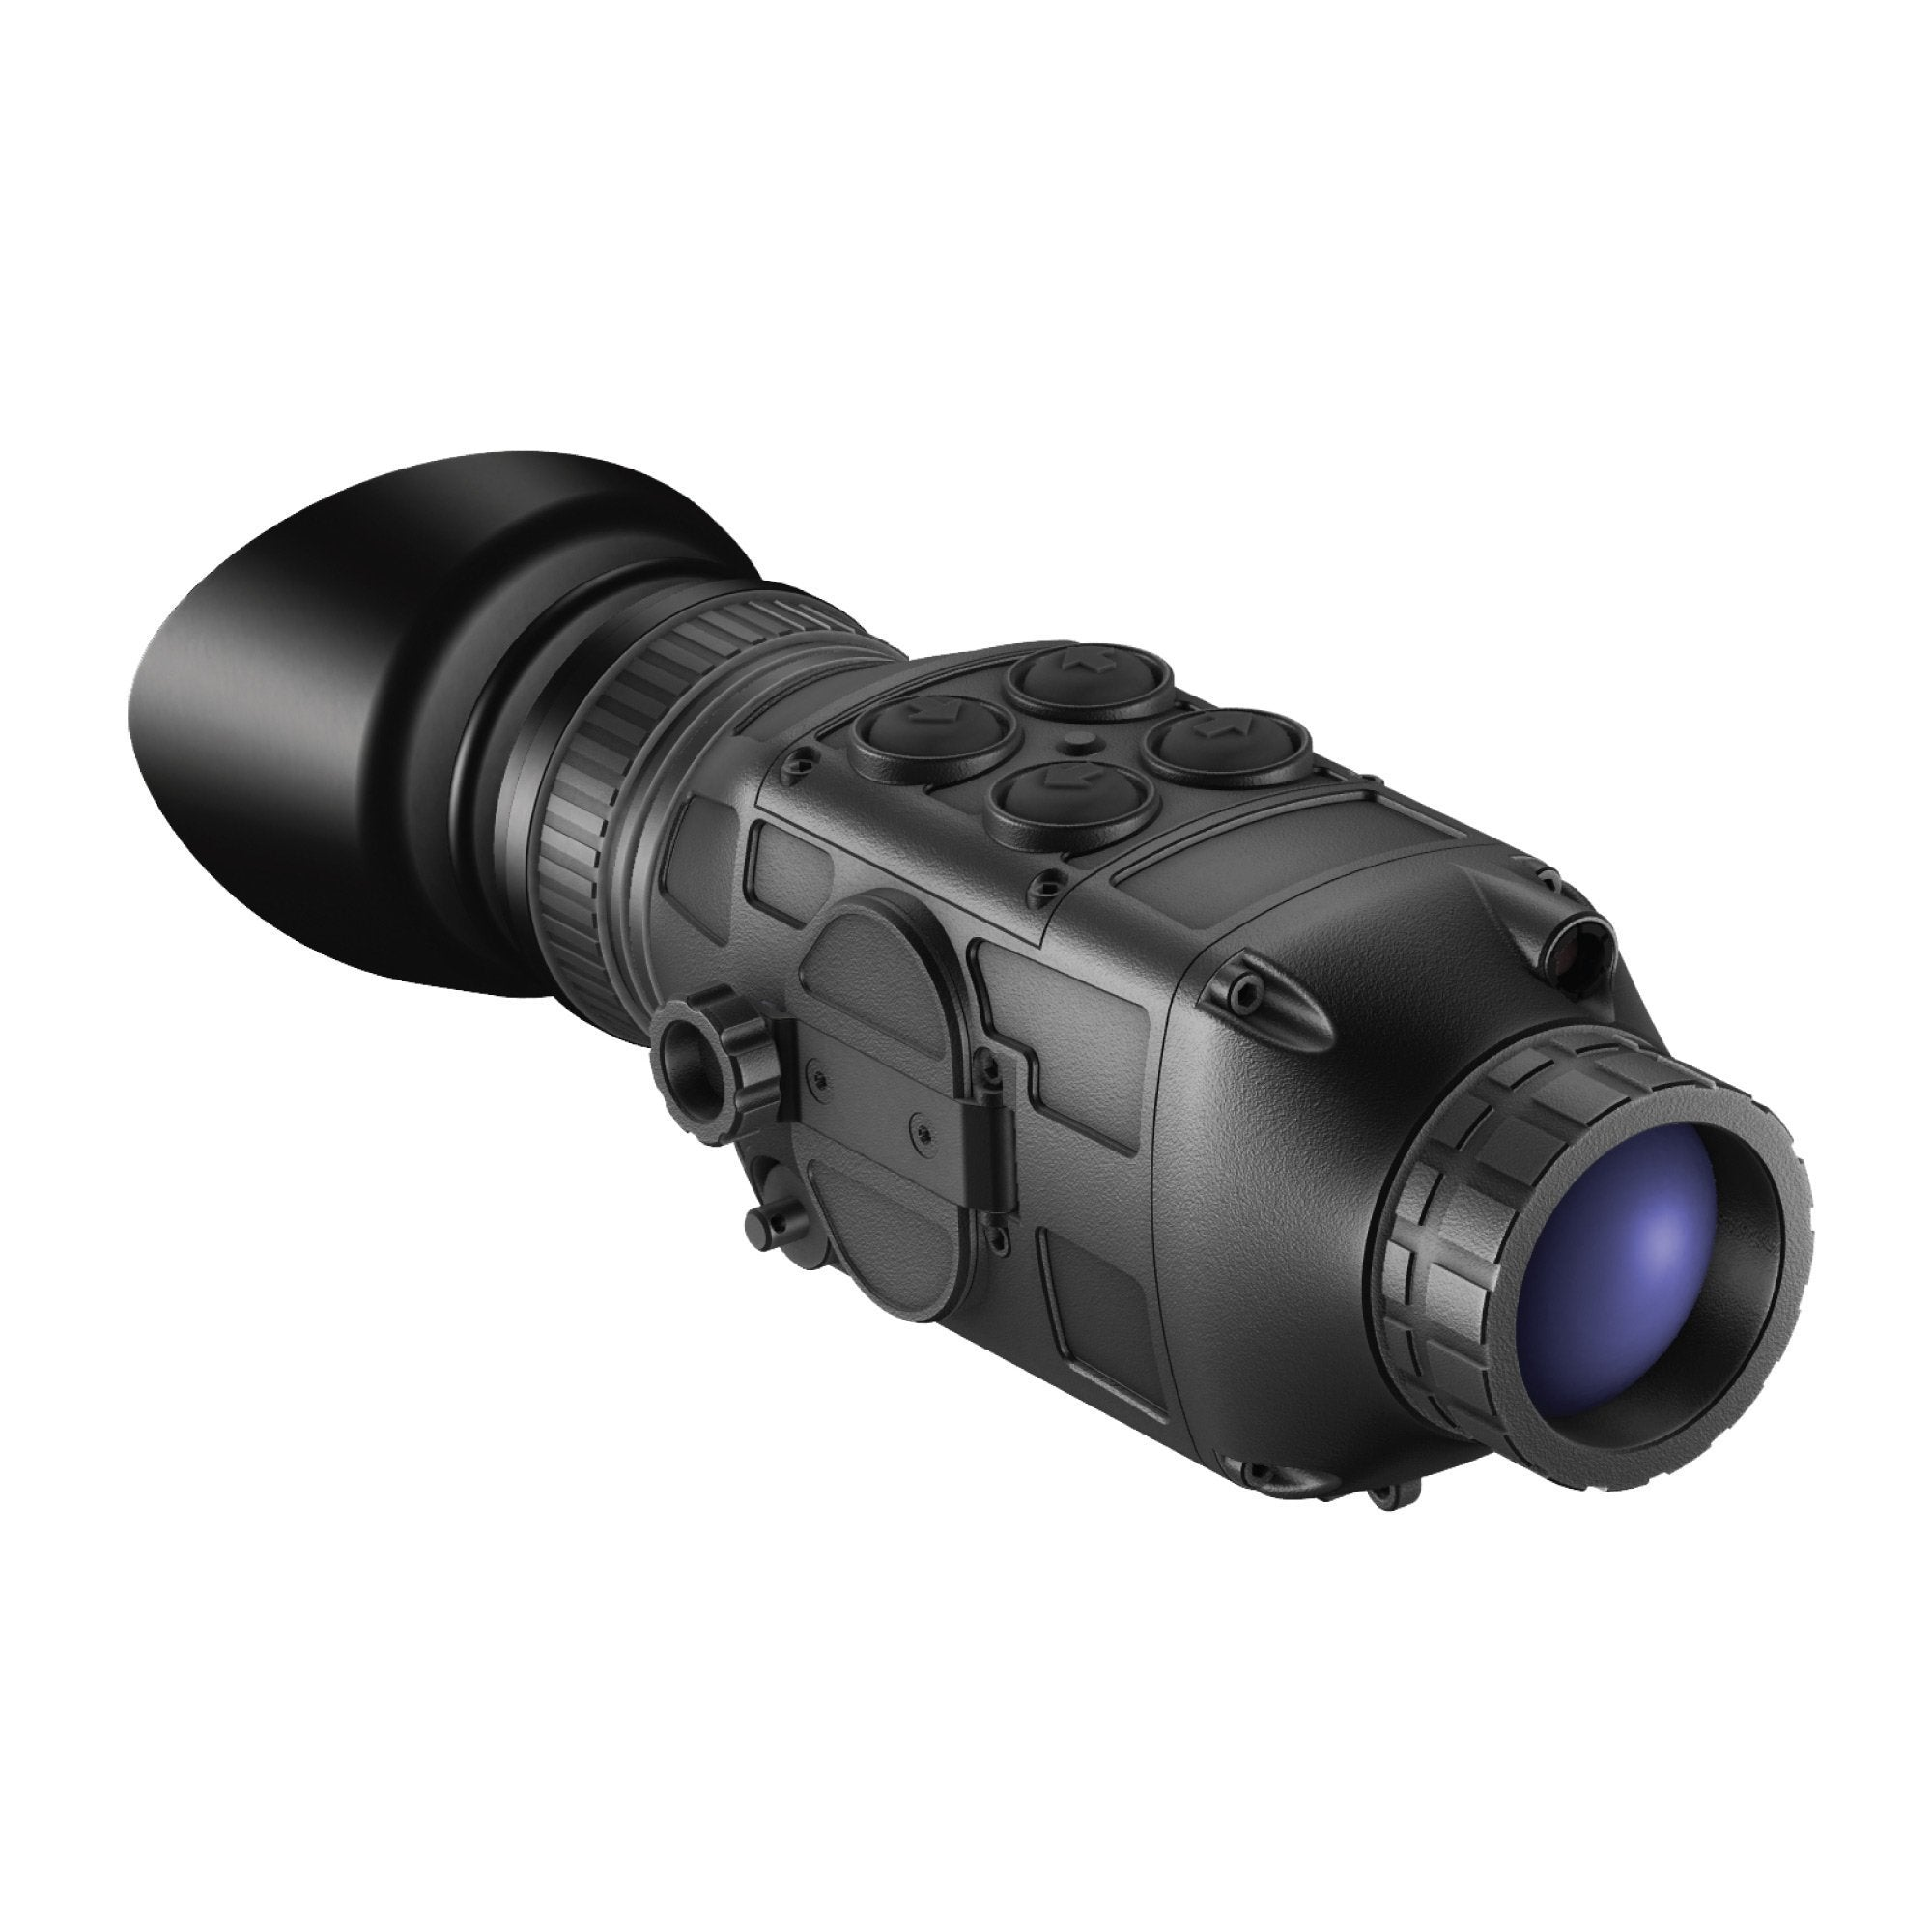 GSCI Multi-Purpose Tactical Thermal Imaging Monocular Tactical Gear Australia Supplier Distributor Dealer